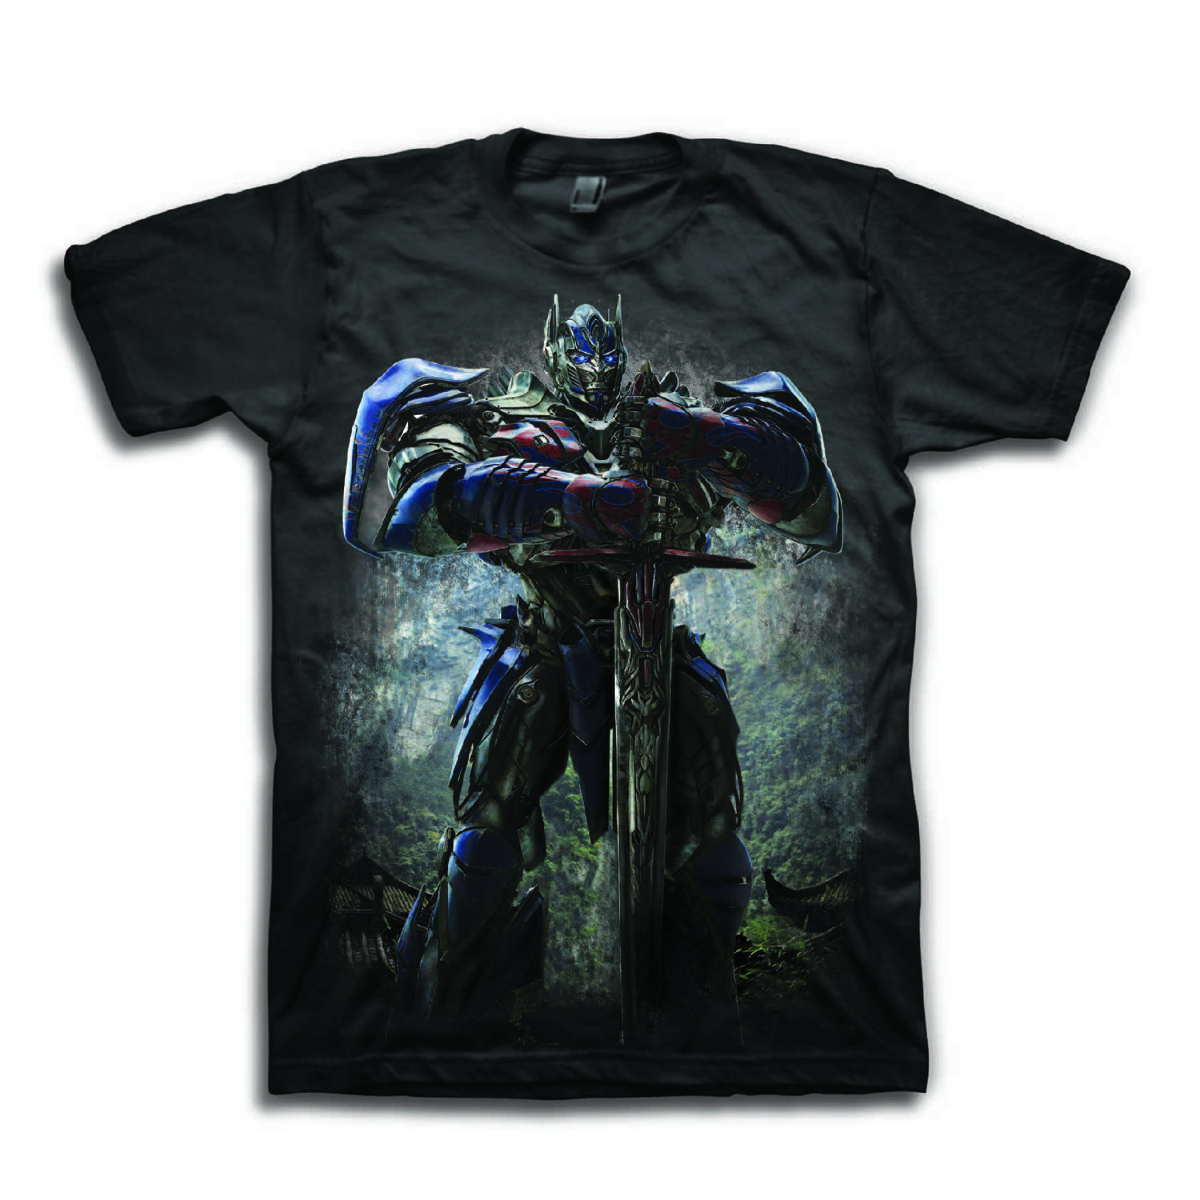 TF EXTINTION OPTIMUS SWORD PX BLK T/S LG